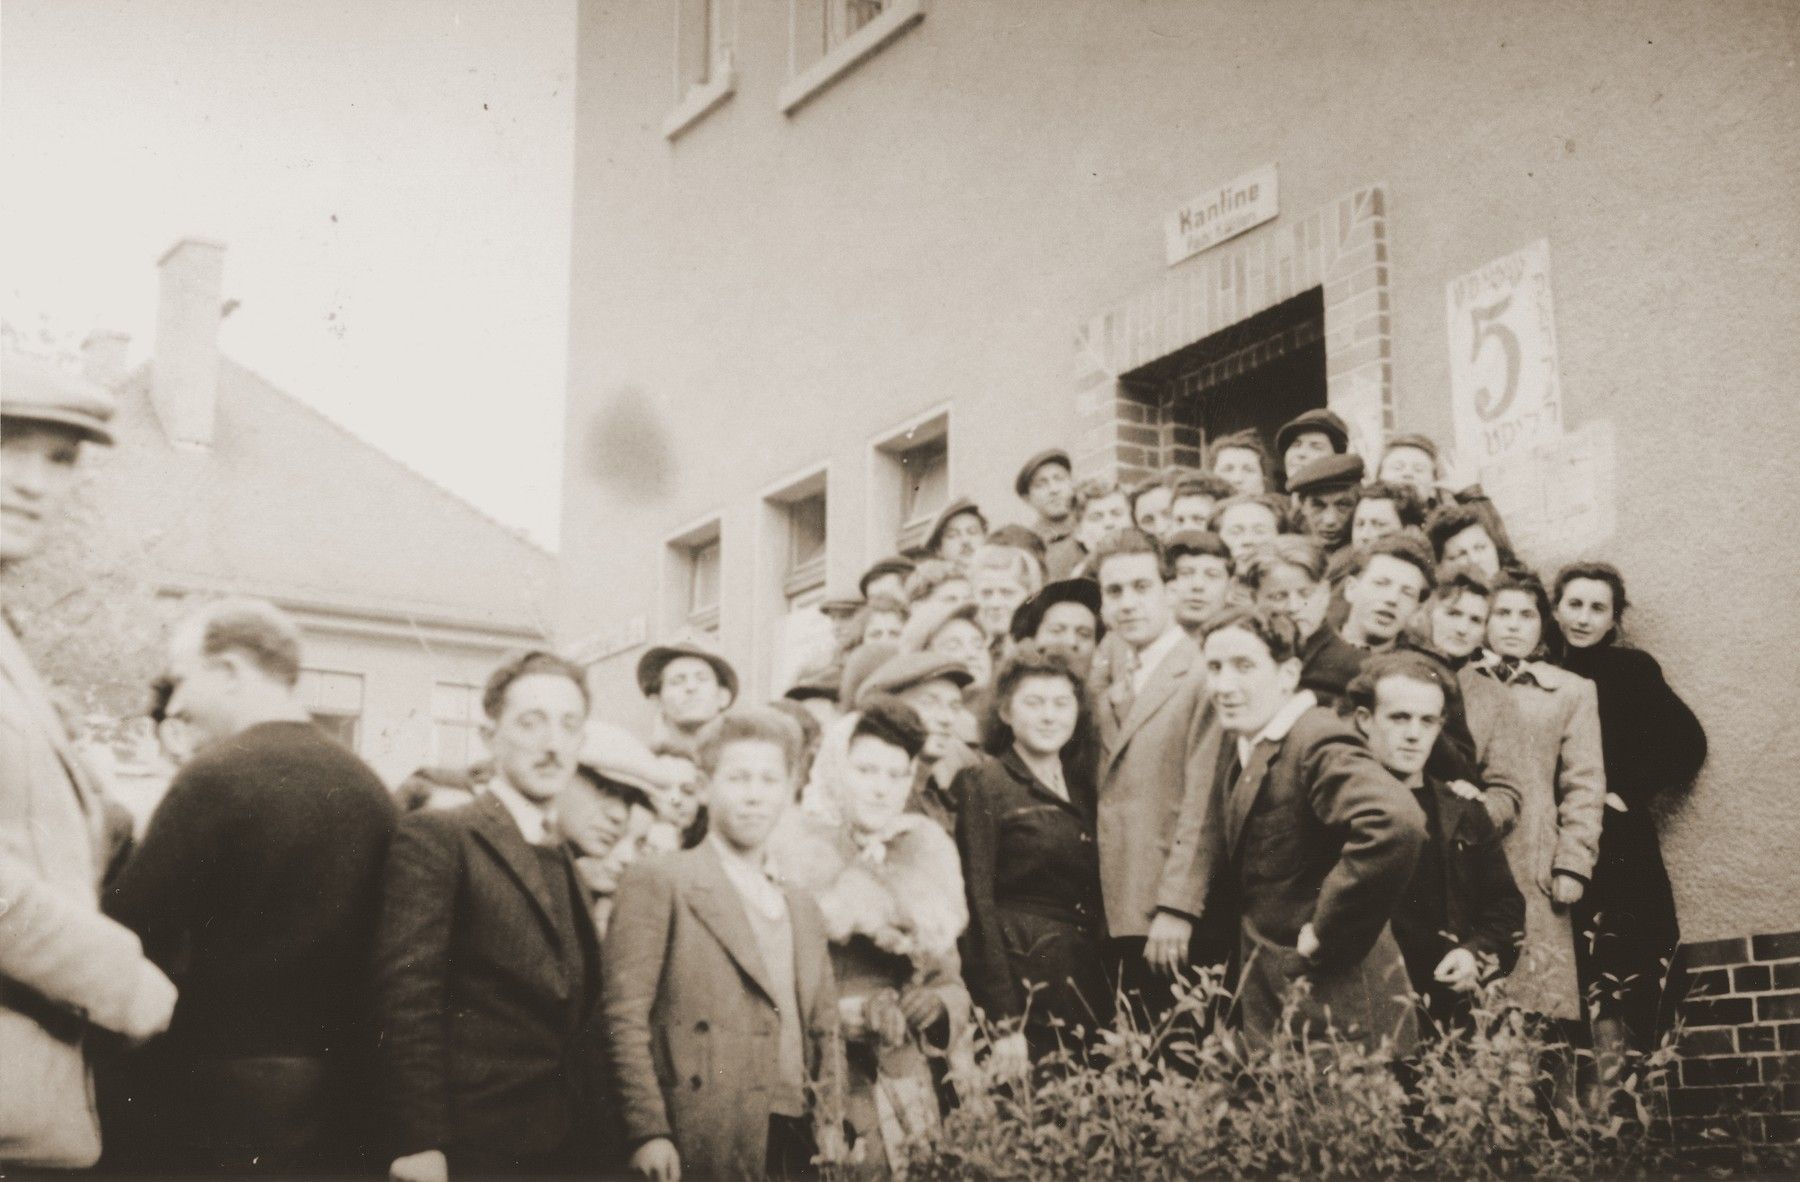 DPs stand outside their block in Belsen DP camp.  Dora Friedfertig is standing in the front row, third from the right.  Stefa Fiedfertig was born in the Lvov ghetto on February 28, 1942.  Prior to the war her father Israel worked in a chocolate factory.  Her mother Dora Odower Friedfertig was a housewife.  After a year, in June 1943, Dora brought Stefa to Josef and Maria Amborski who hid her for the duration of the war.  Originally they also hid Dora who posed as Josef's sister, but she eventually had to leave.  After the war, Dora and Stefa were reunited, but Israel had perished.  Dora and Stefa stayed in the Belsen DP camp before coming to the United States in June, 1950 on board the General House.